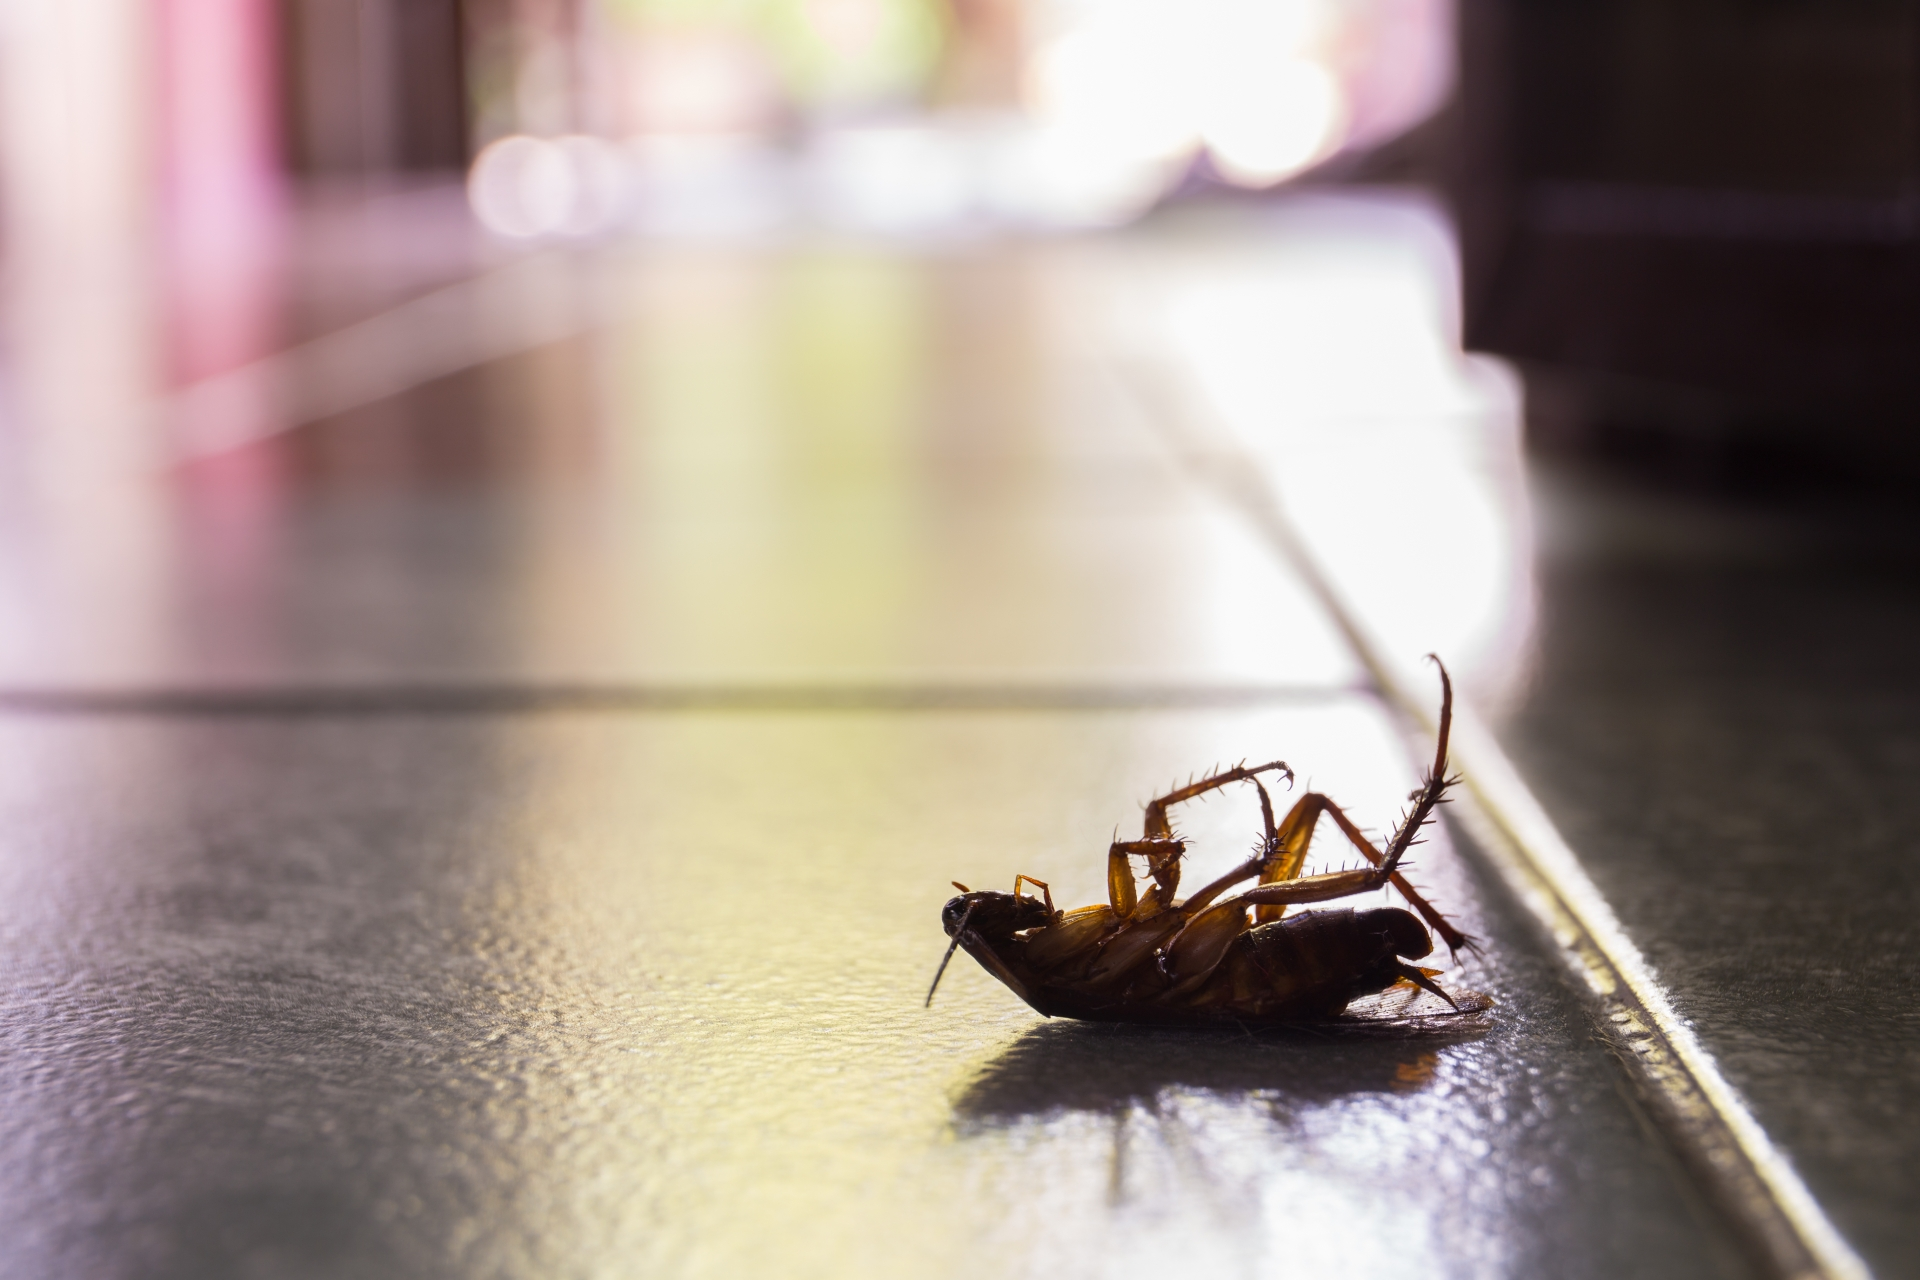 Cockroach Control, Pest Control in Lambeth, SE11. Call Now 020 8166 9746